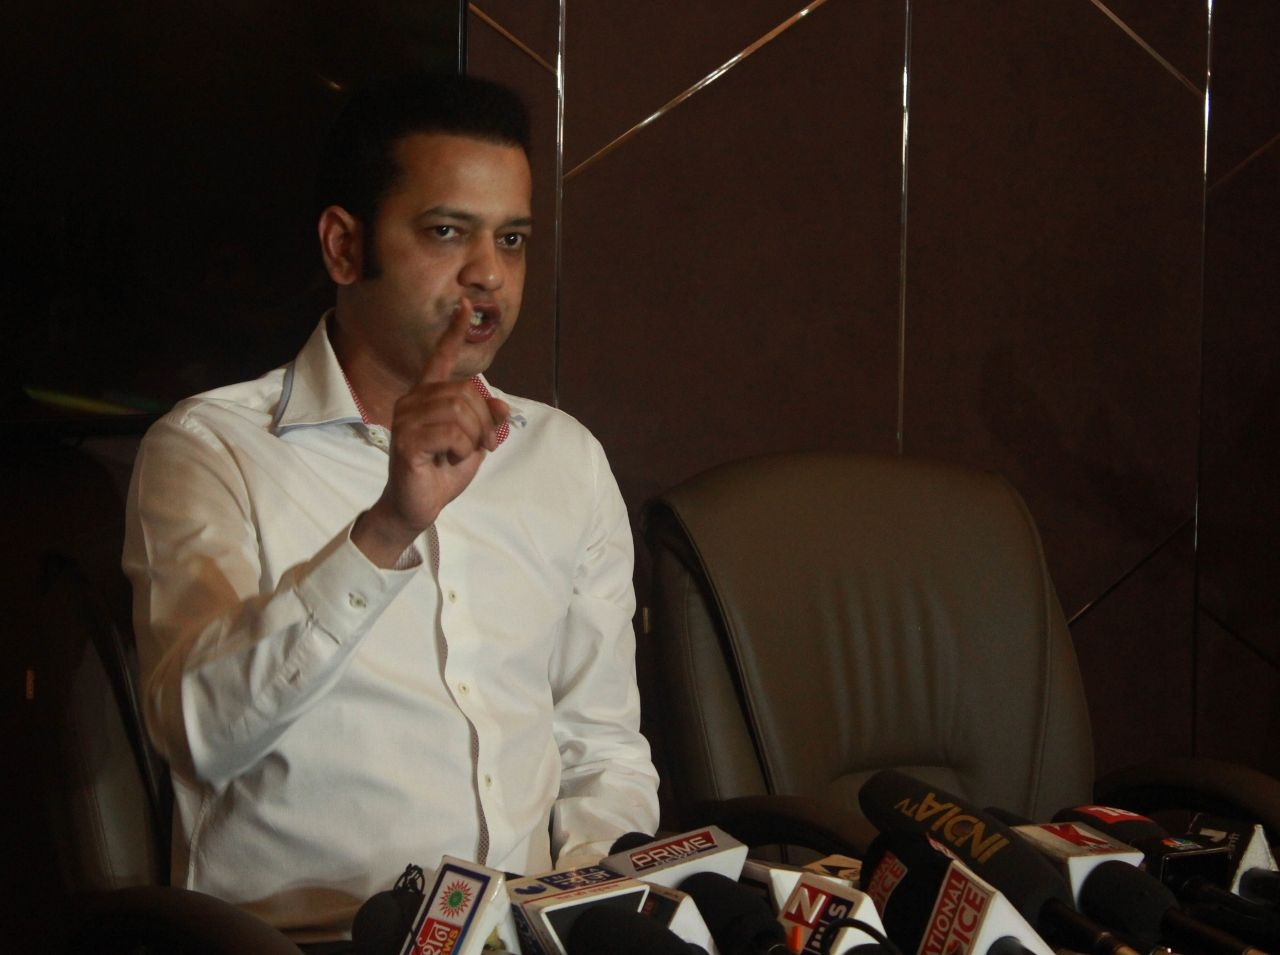 rahul mahajan speaks about abuse controversy in uttar Pradesh.